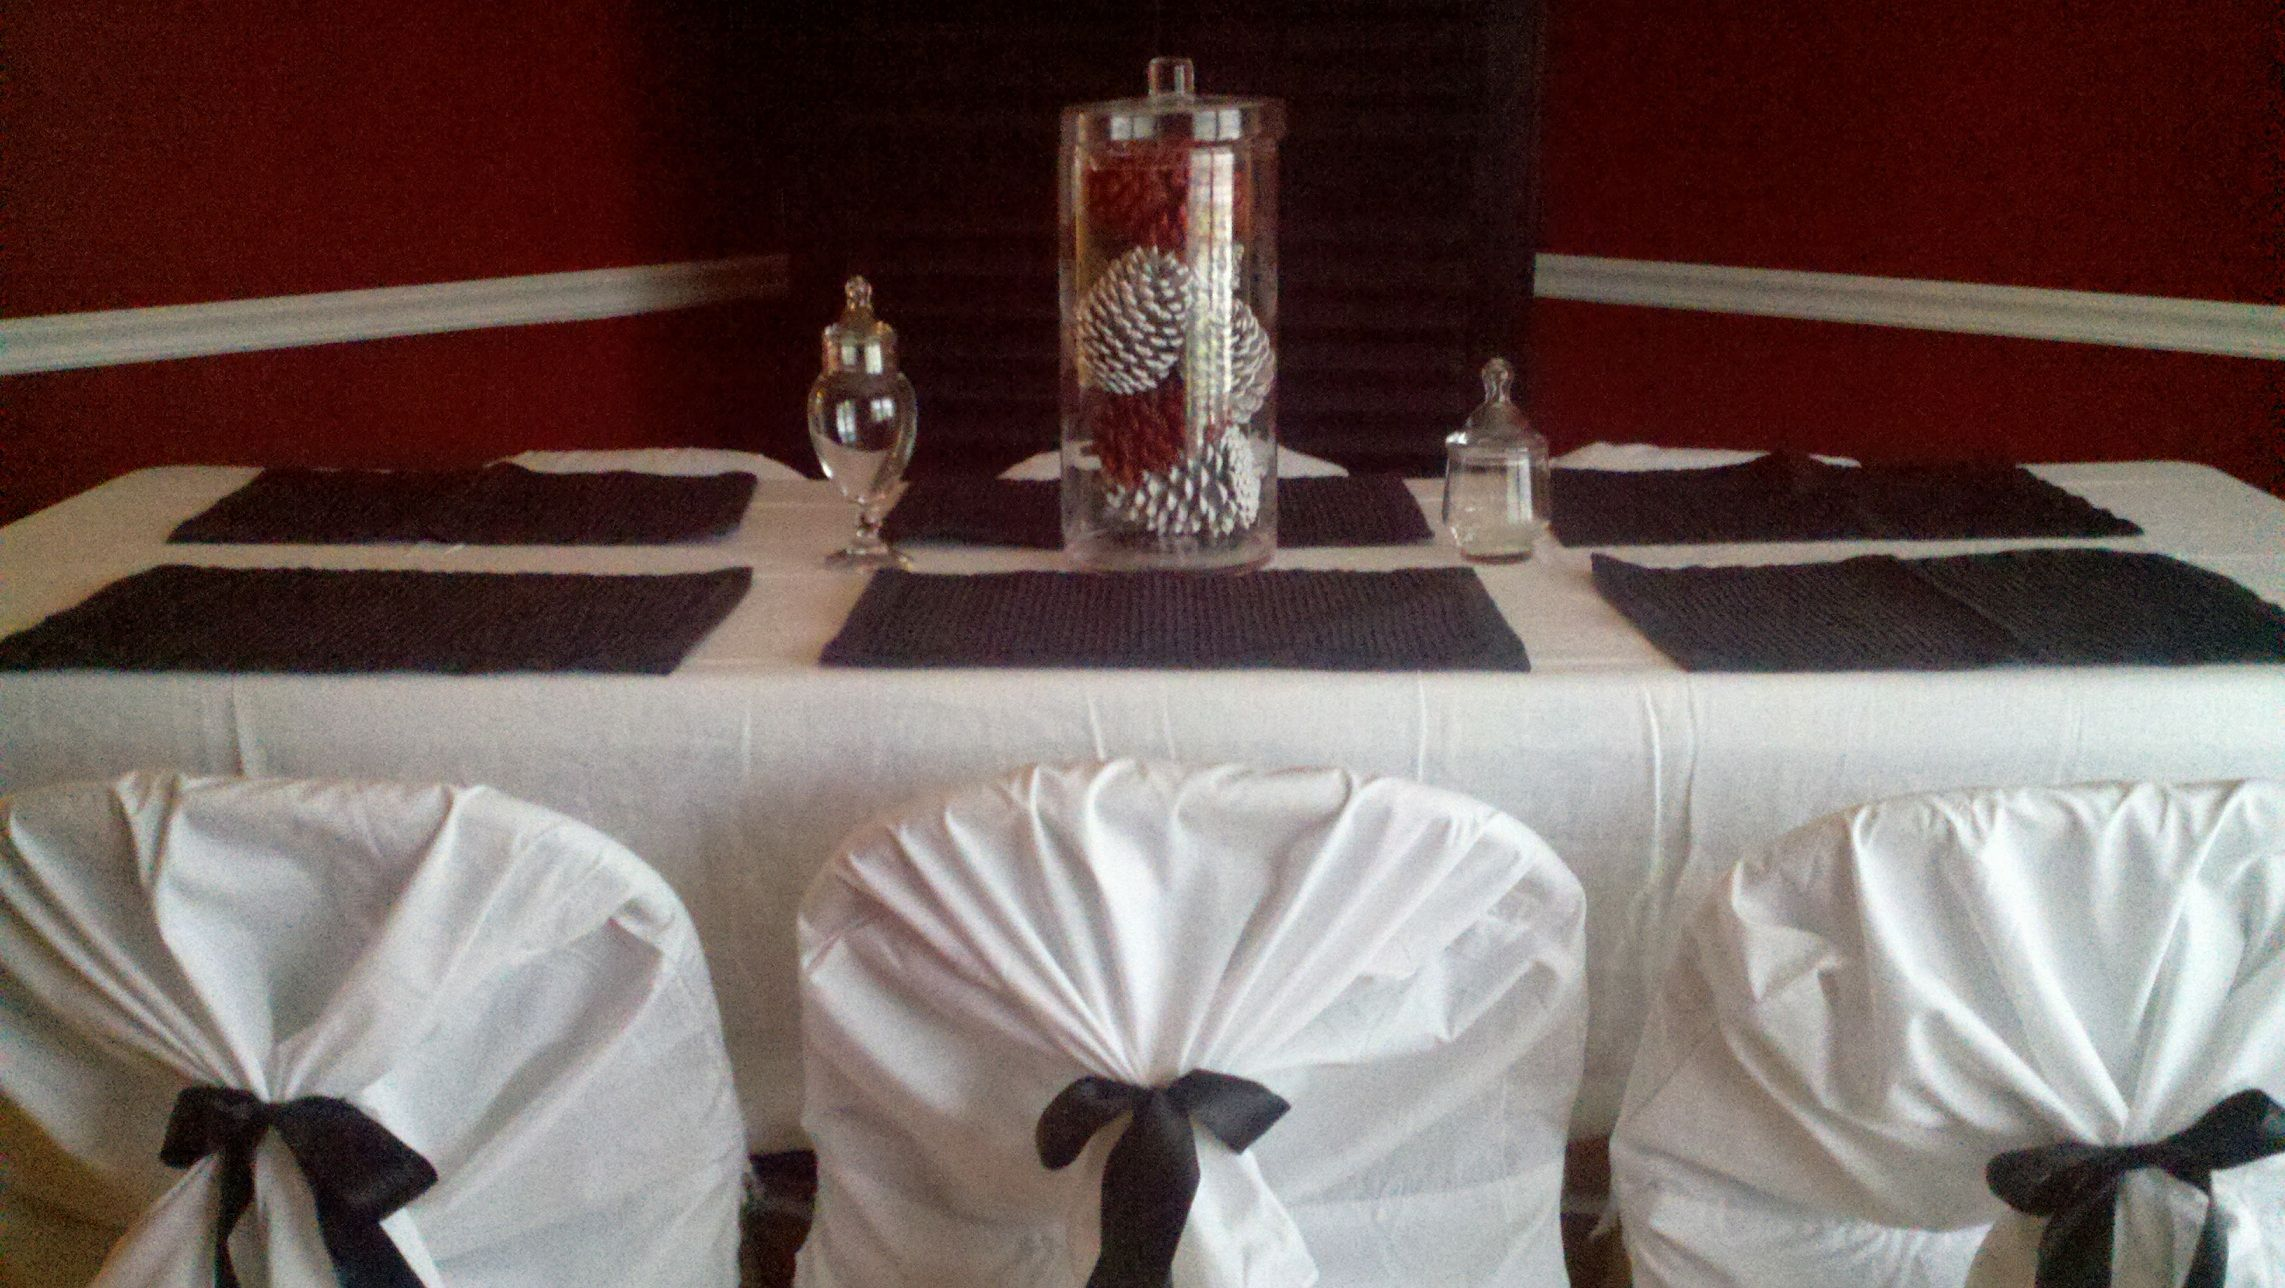 Pin By Valerie Carter On Entertaining Diy Chair Covers Fun Easy Crafts Diy Chair